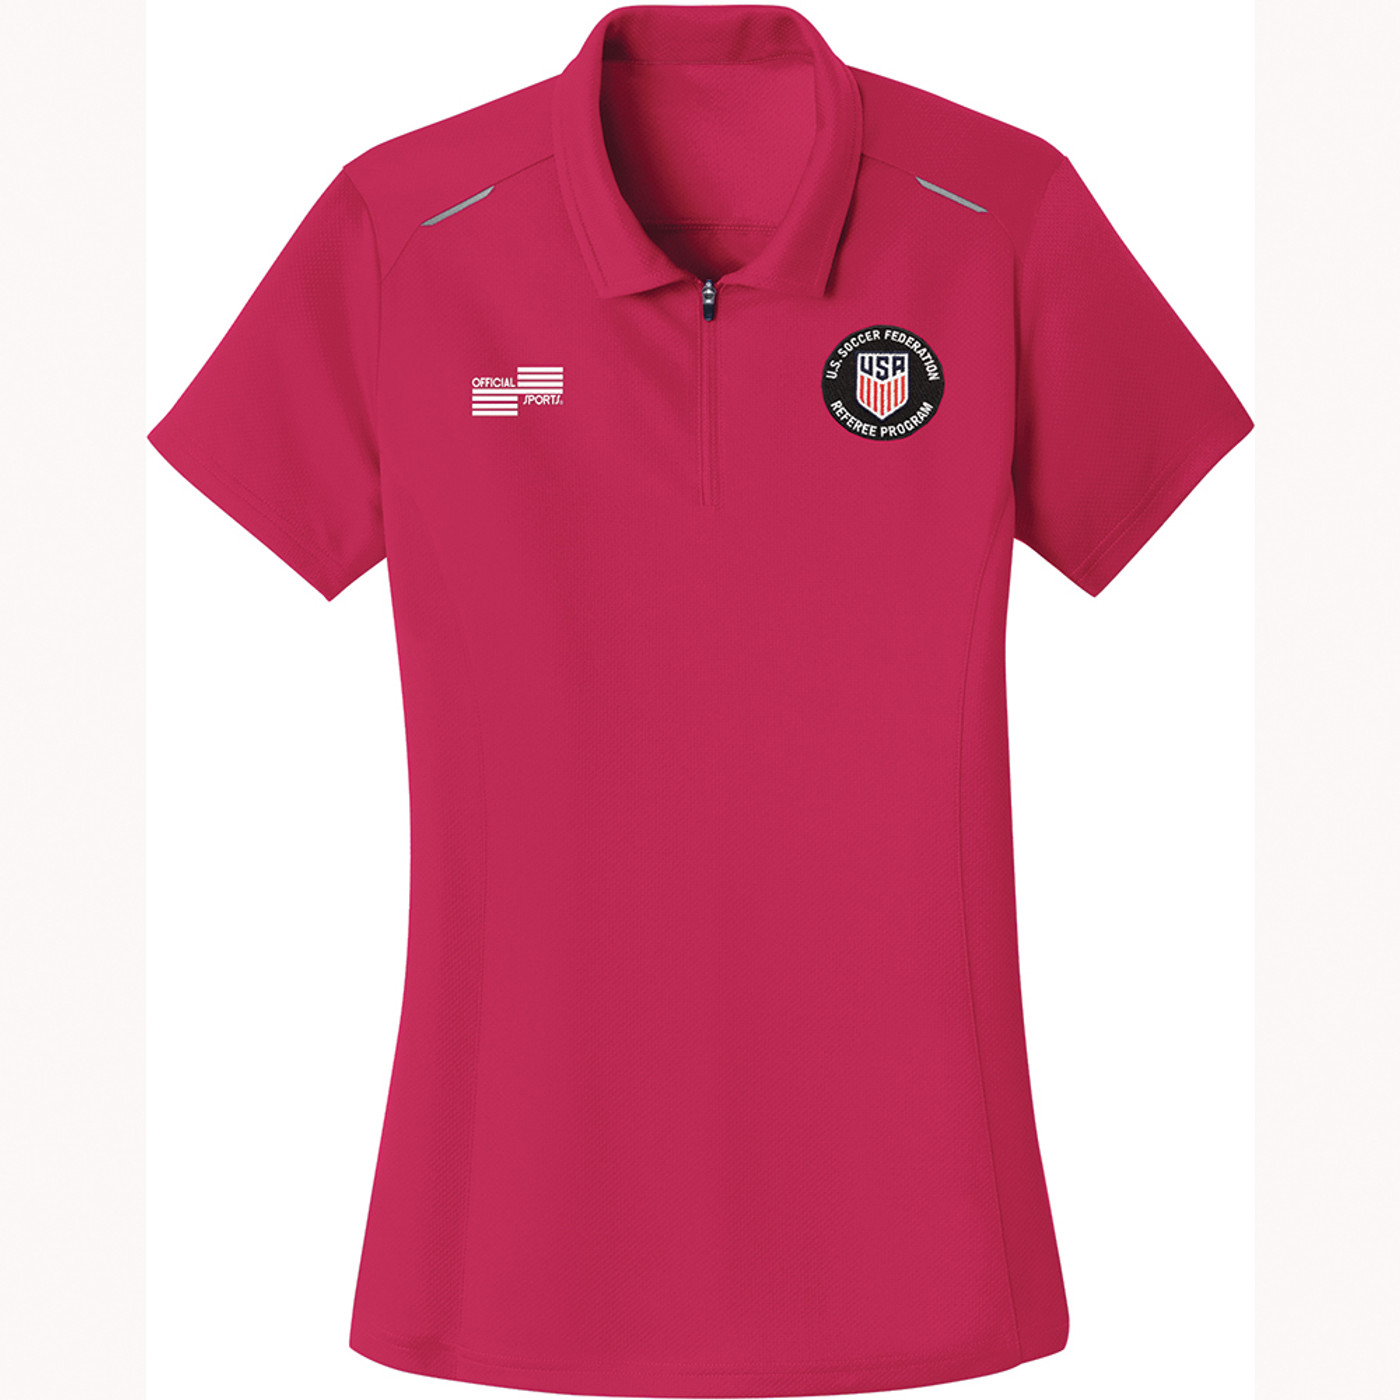 W2404CL USSF Women's Performance Wicking Golf Shirt